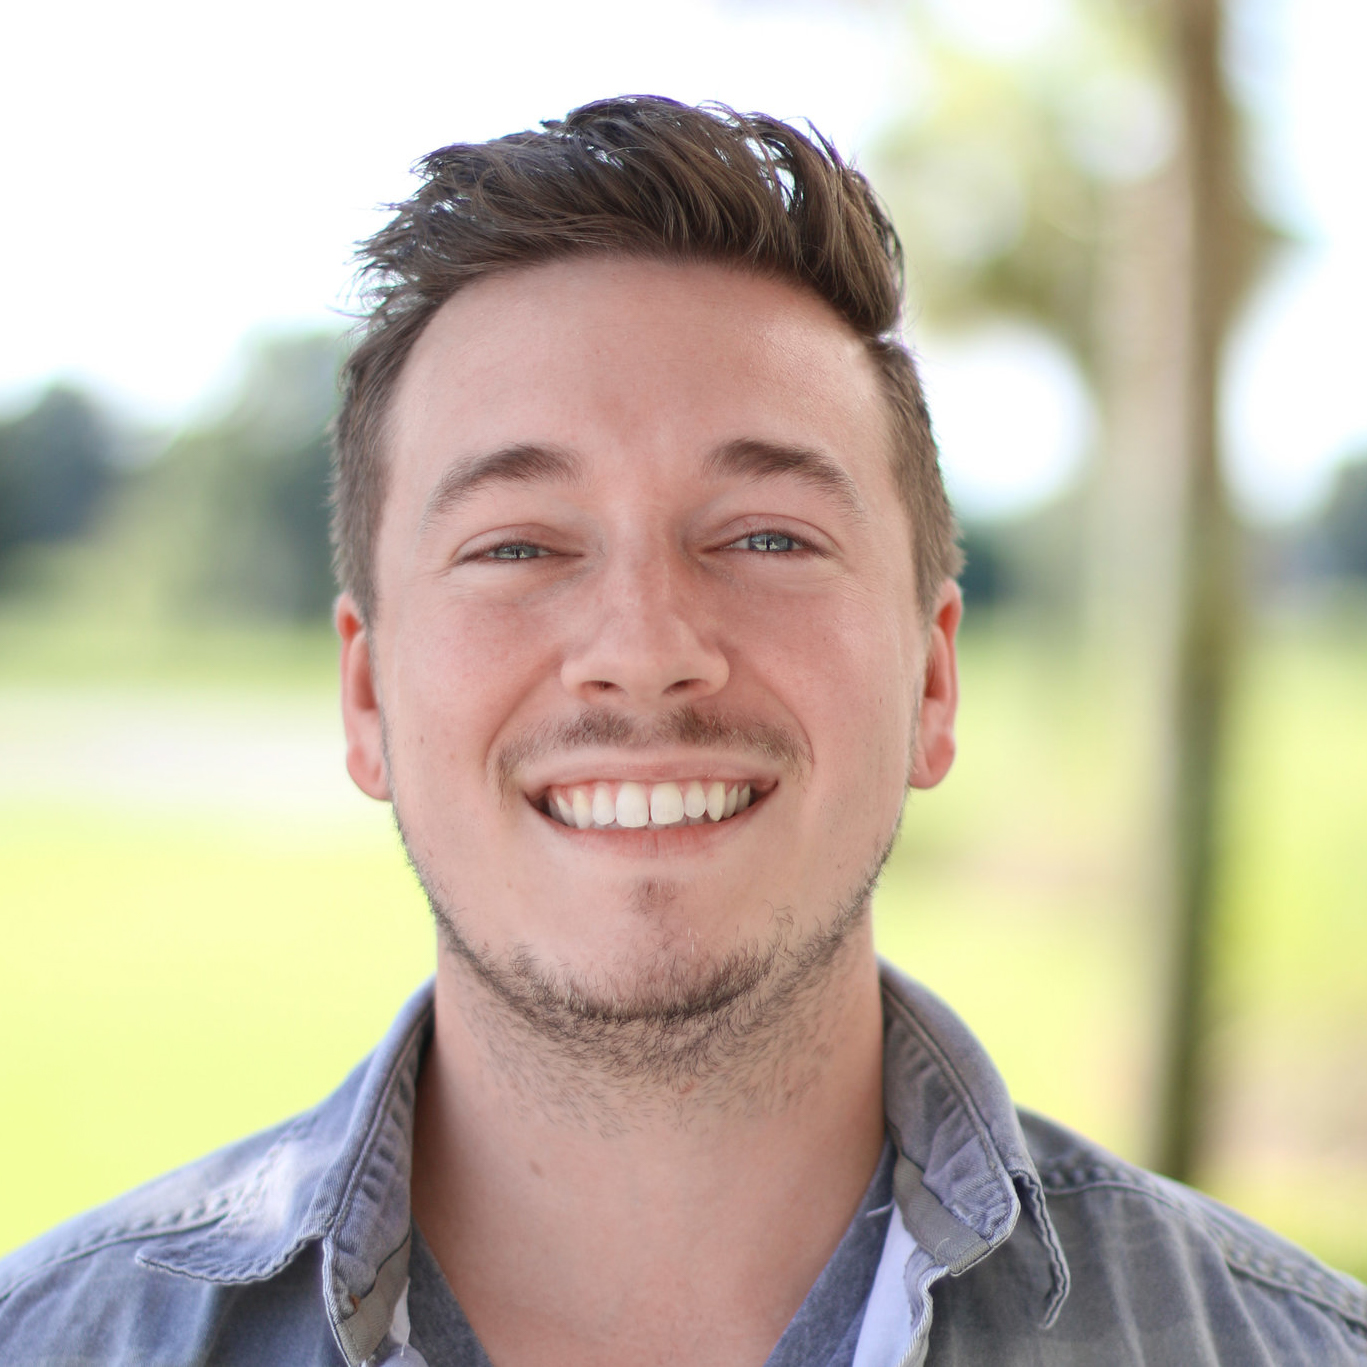 JACOB SYLVIA - The Villages campus Pastorjacob@thesprings.net